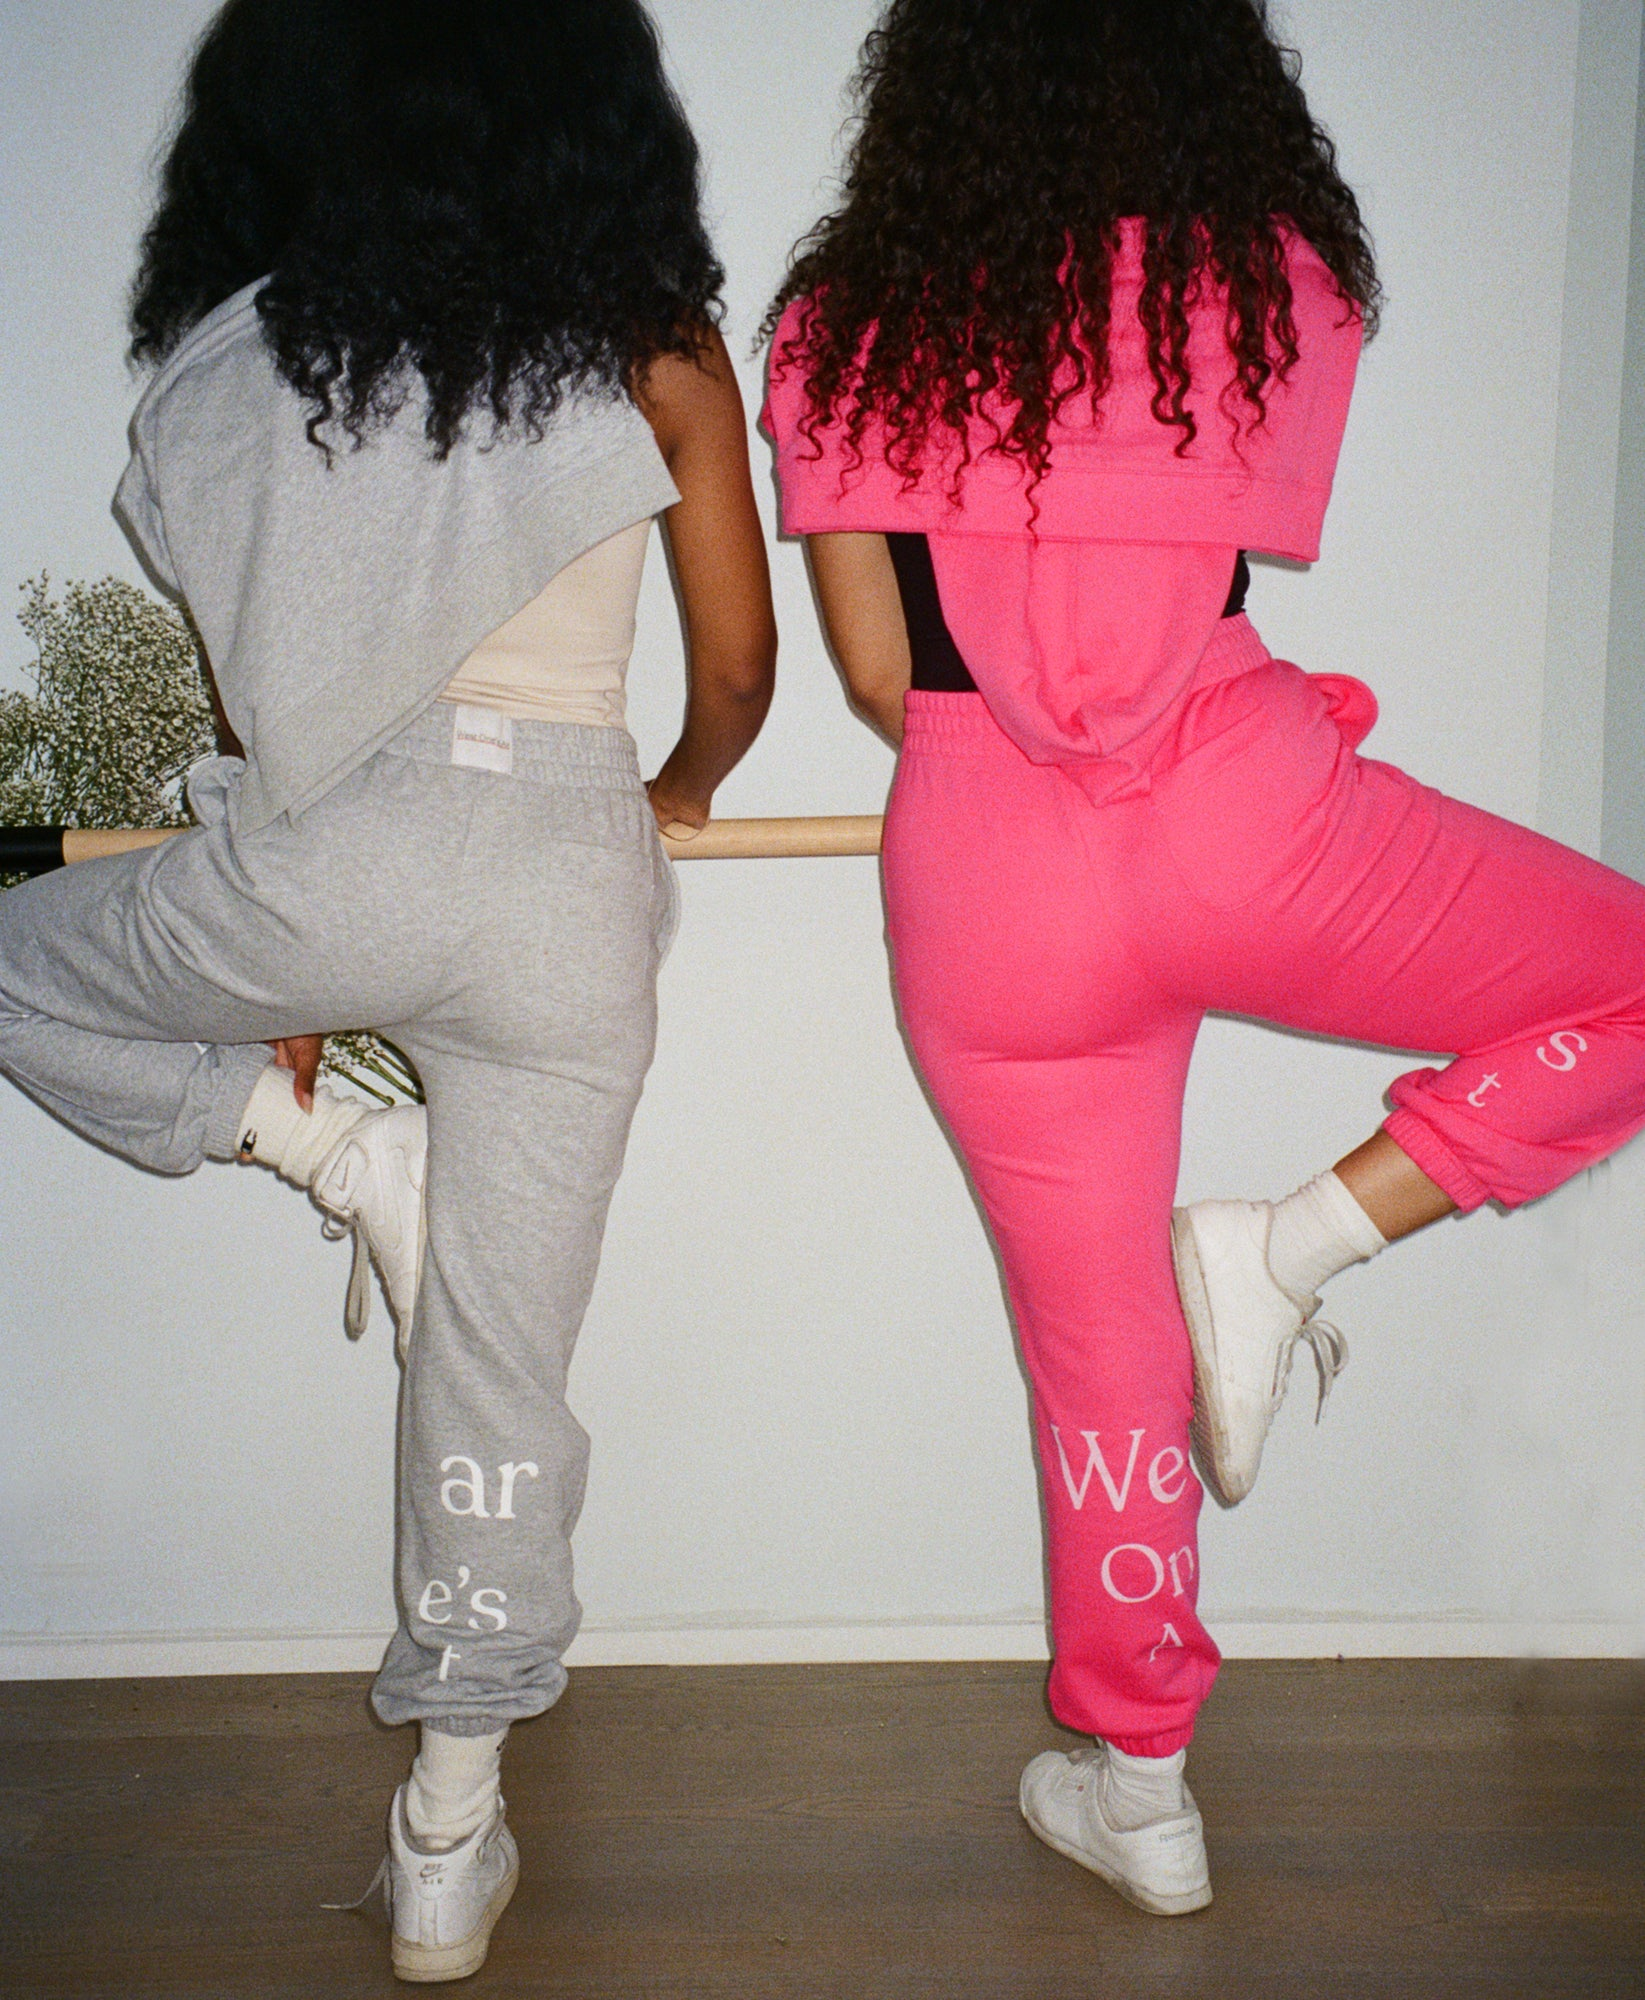 Wear One's At French Terry Sweatpants in Watermelon and Sport Grey on Models Back View